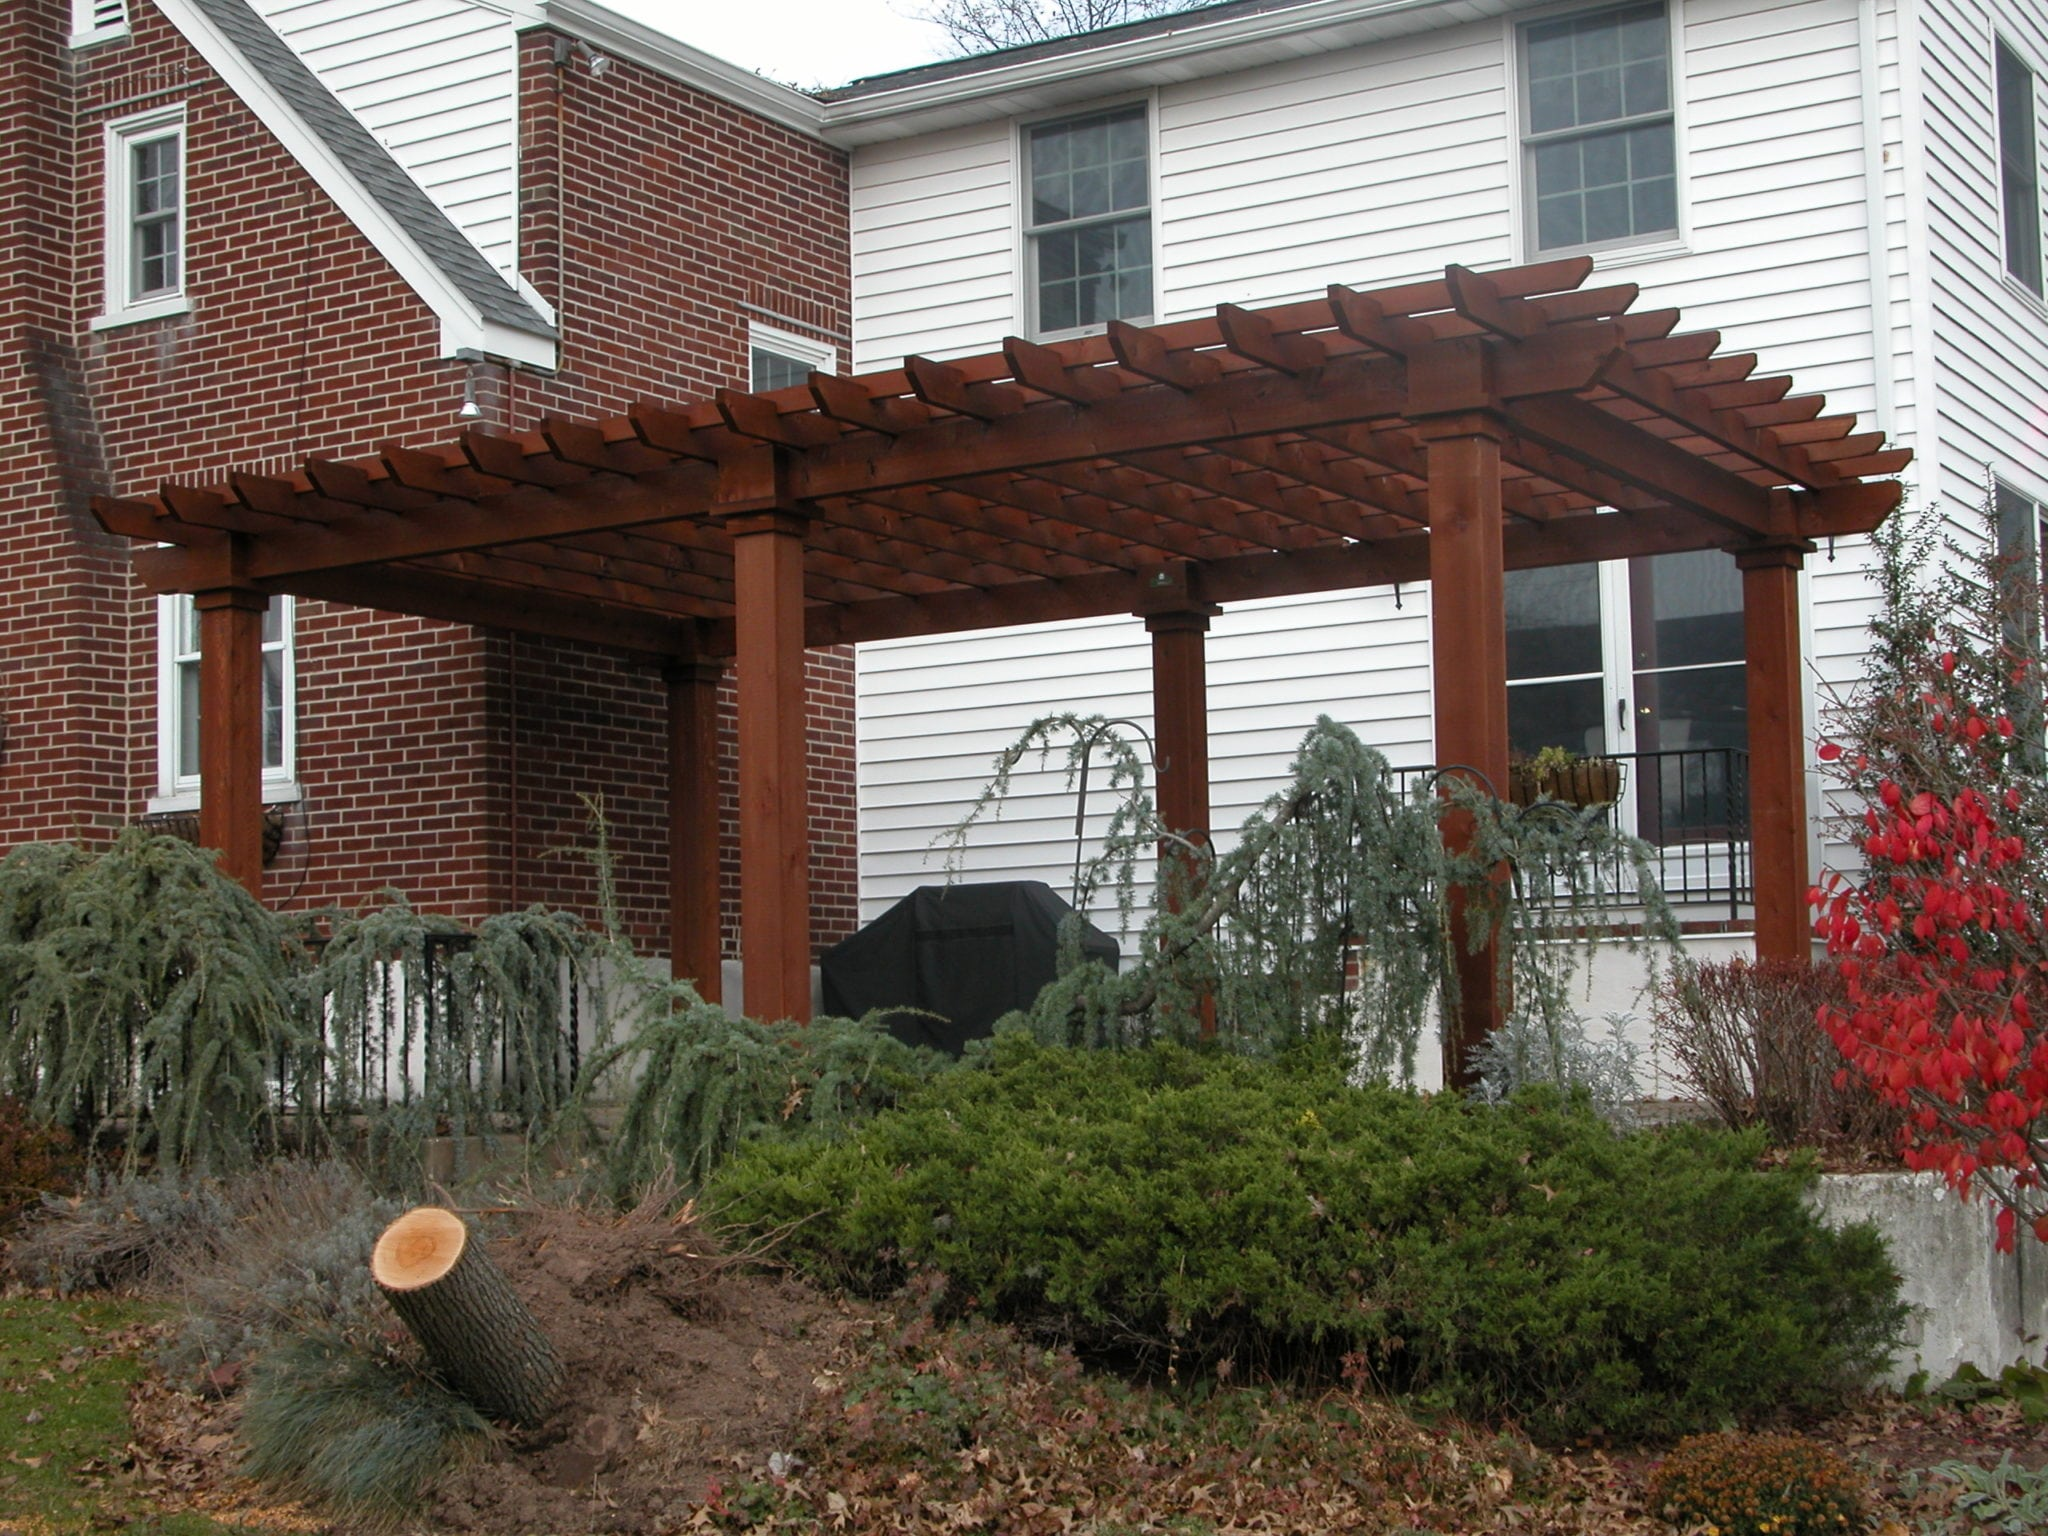 Pergola Designs Patio Pergola Ideas Pergola Designs Berks Chester Counties